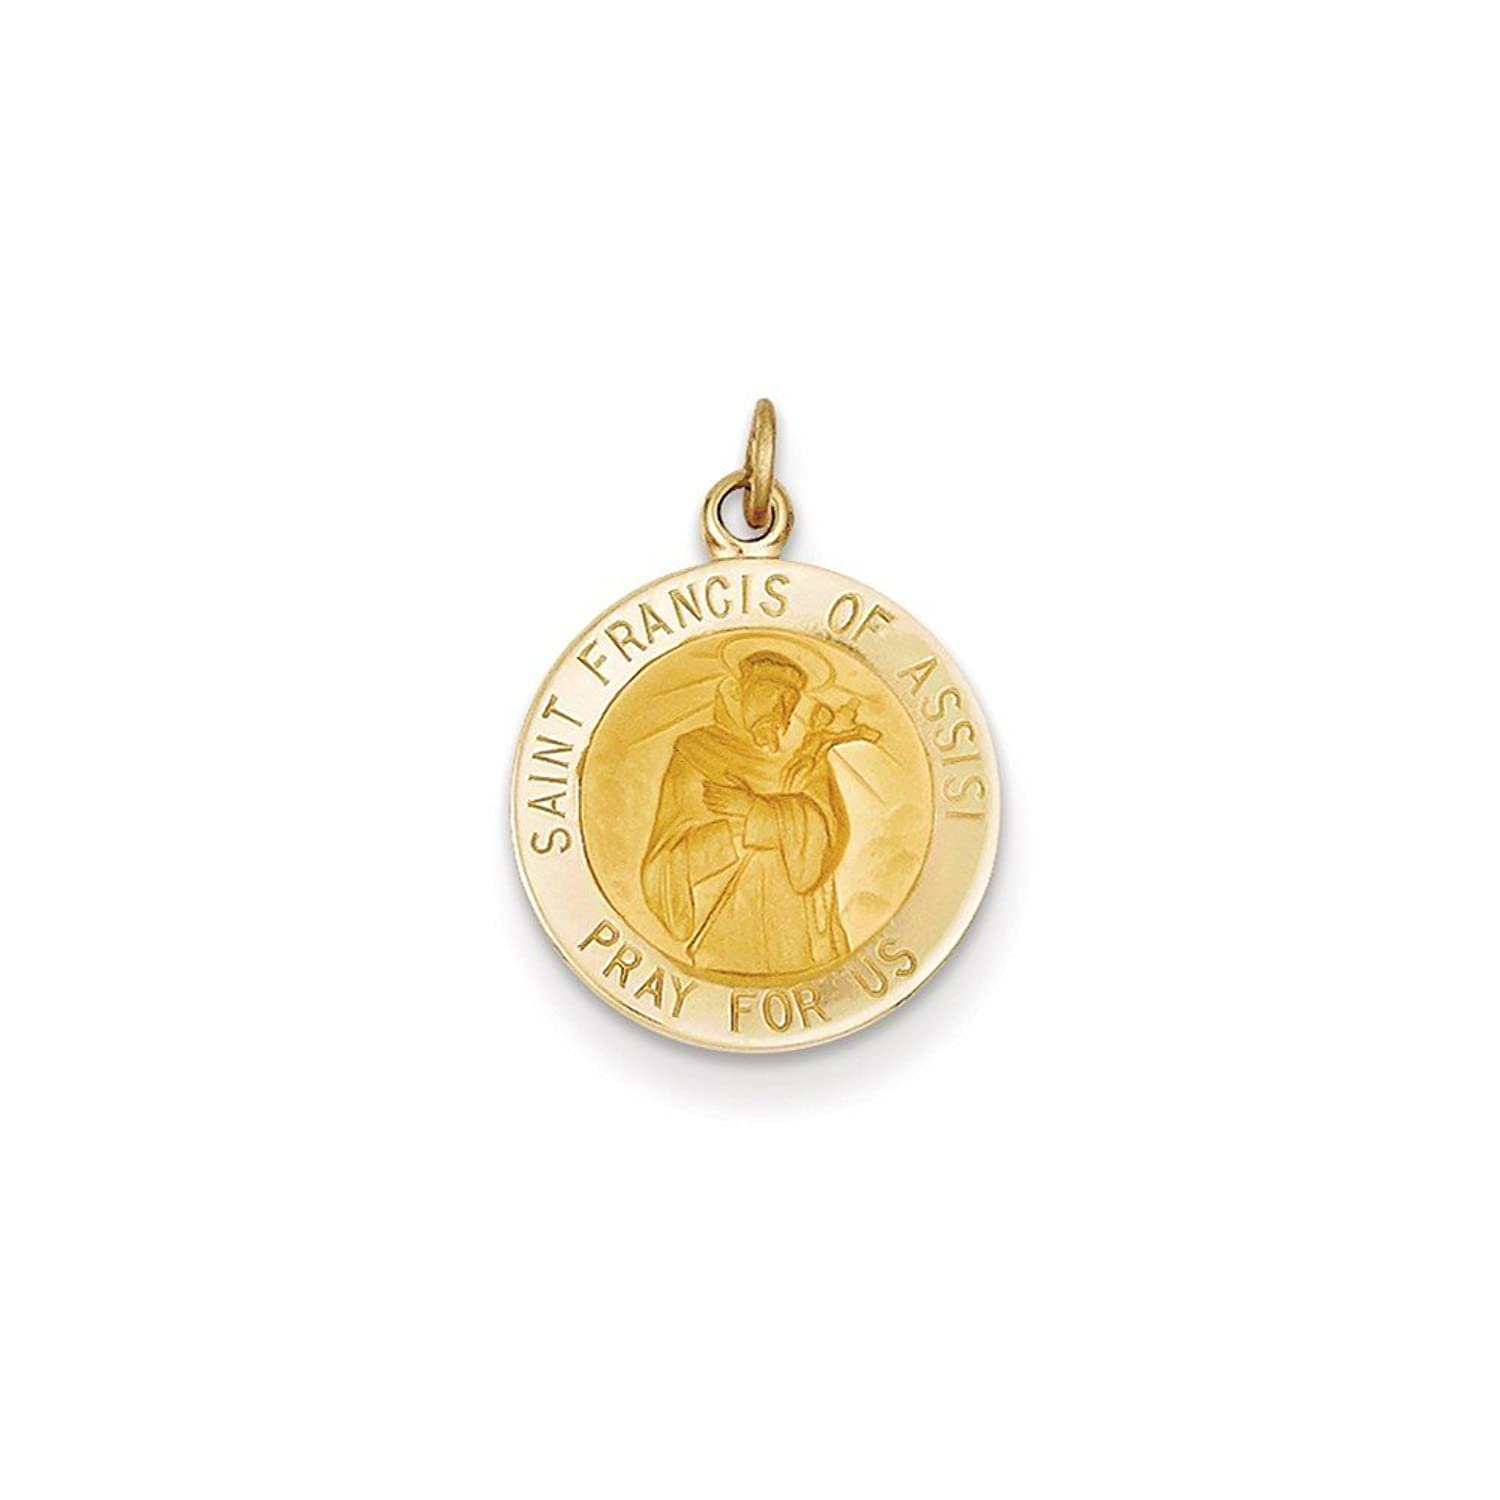 14k Gold Saint Francis of Assisi Medal Charm Pendant (0.91 in x 0.59 in)